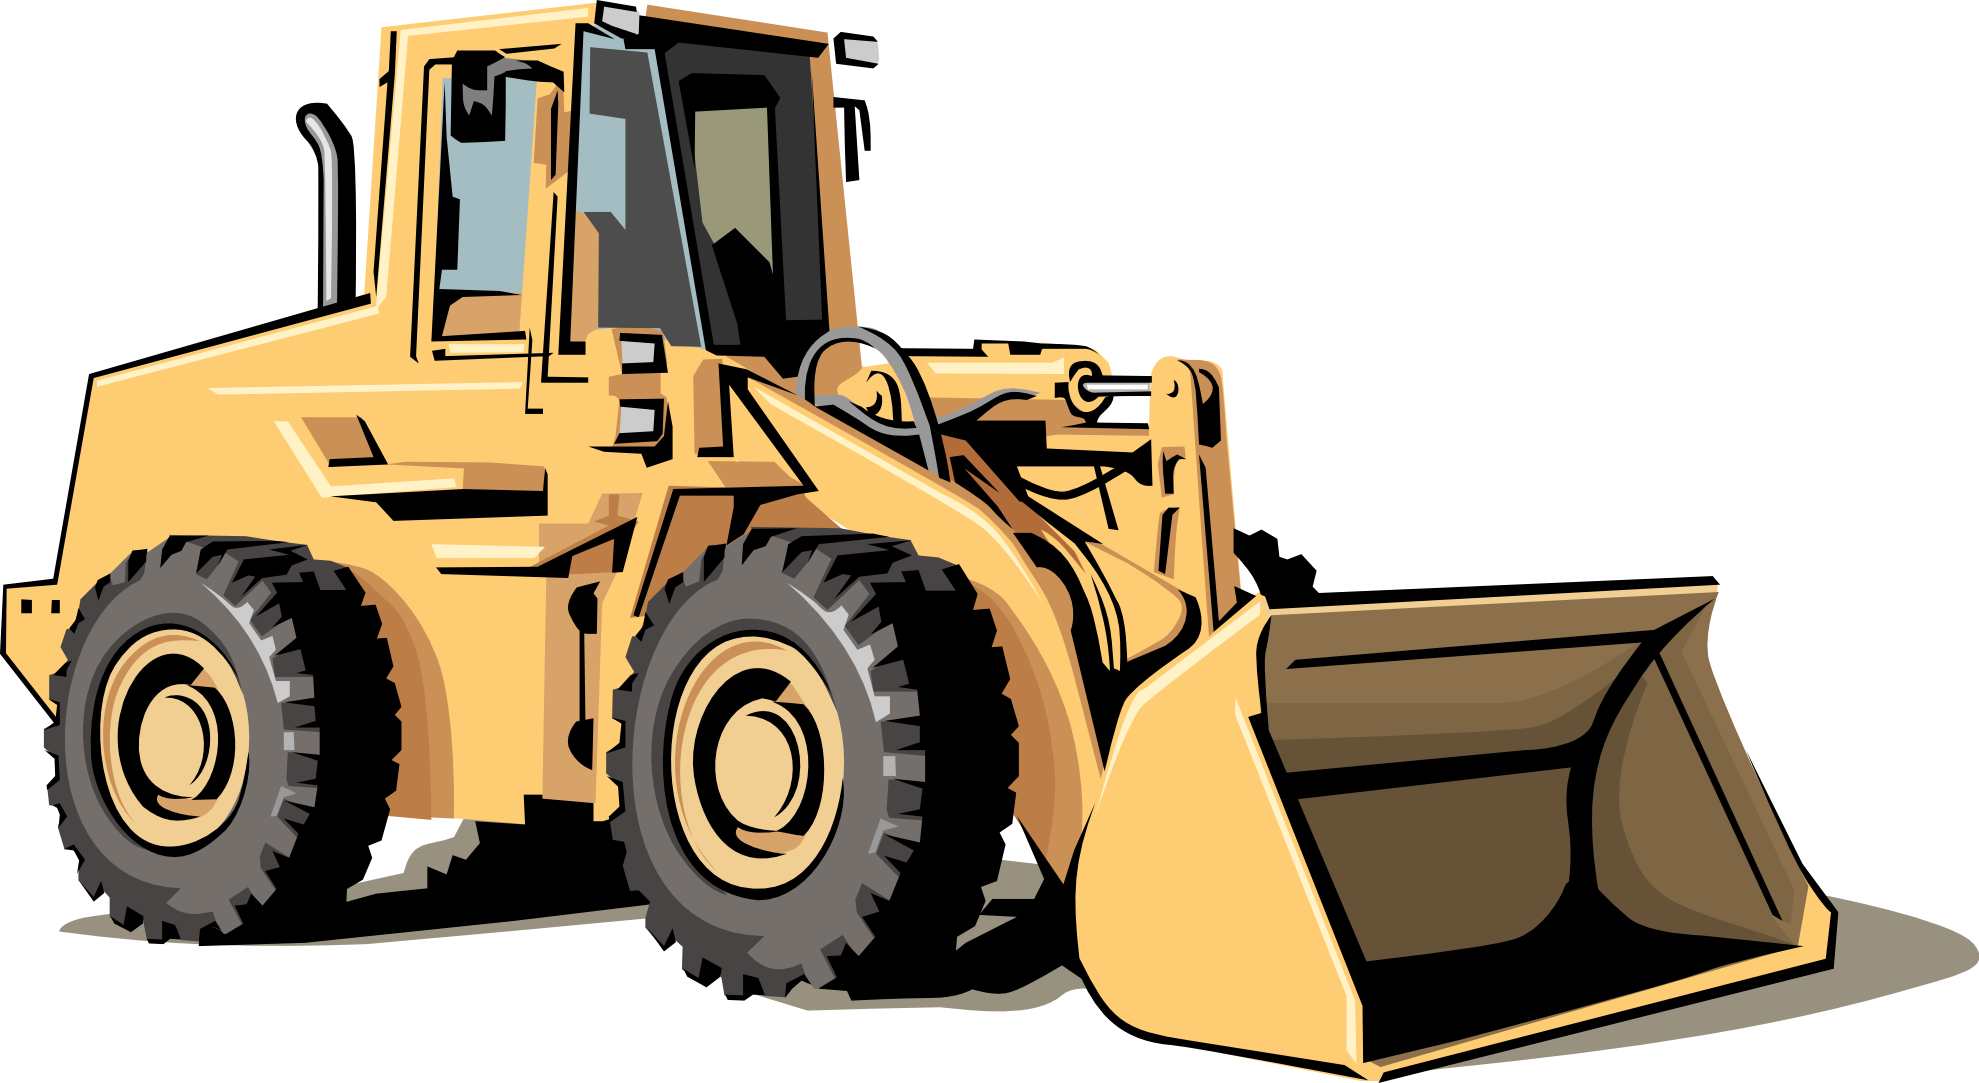 Construction Equipment Clipart Images